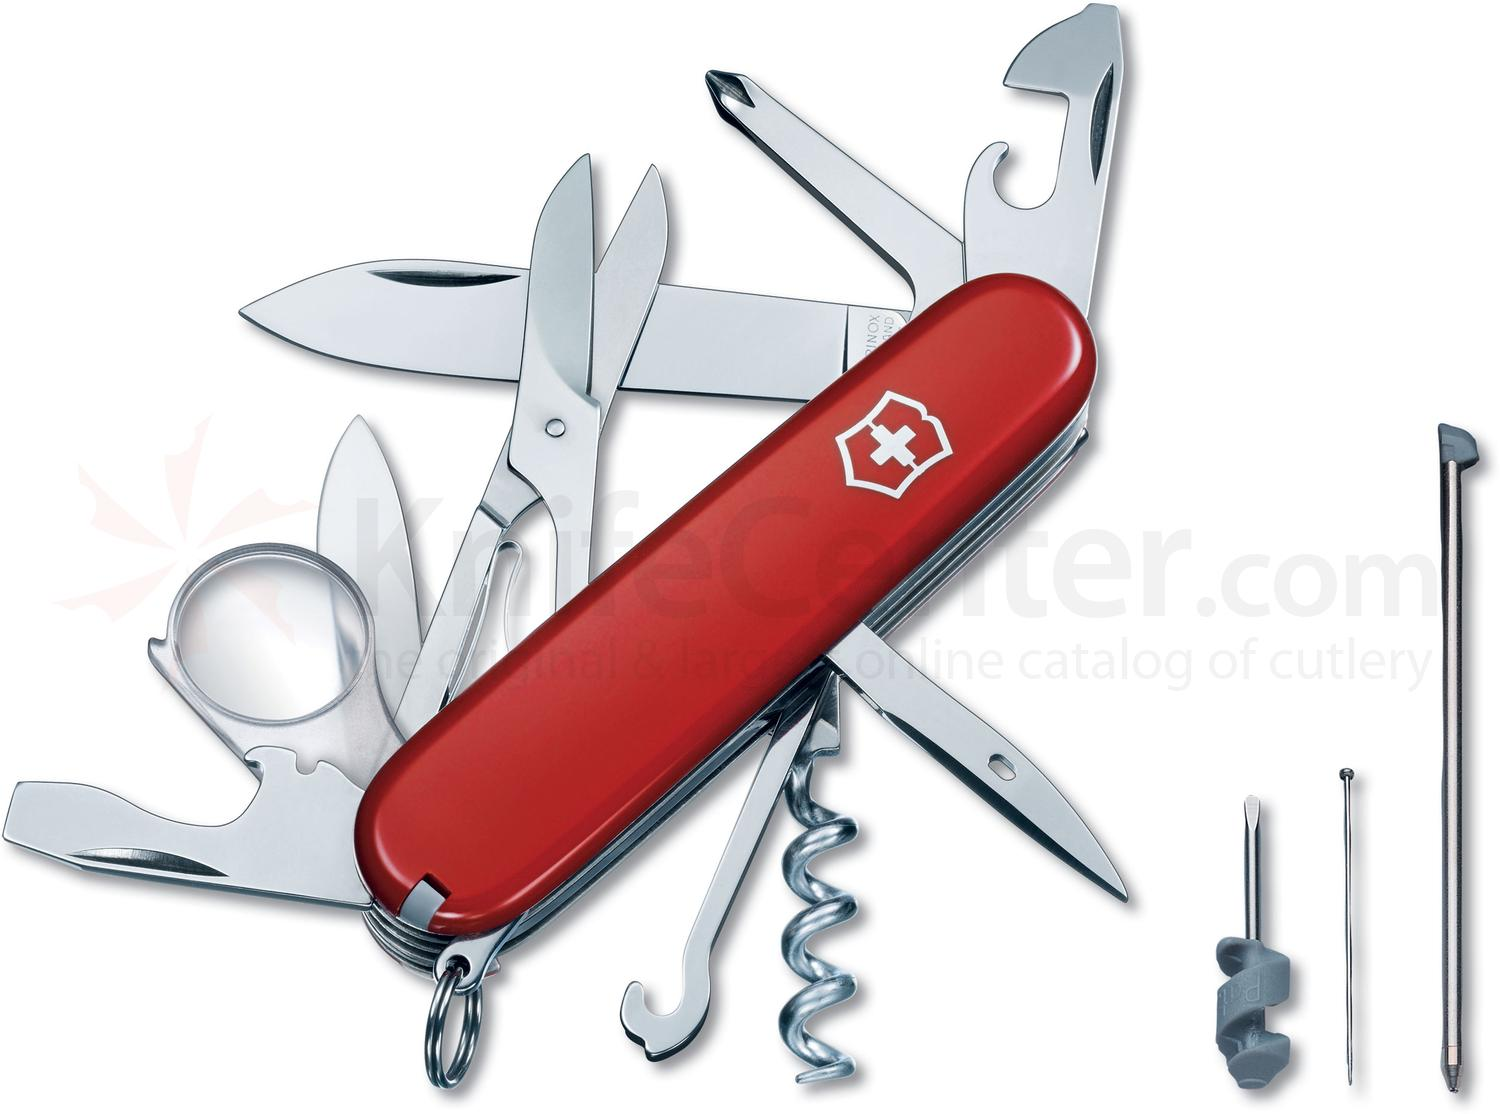 Victorinox Swiss Army Explorer Plus Multi-Tool, Red, 3.58 inch Closed